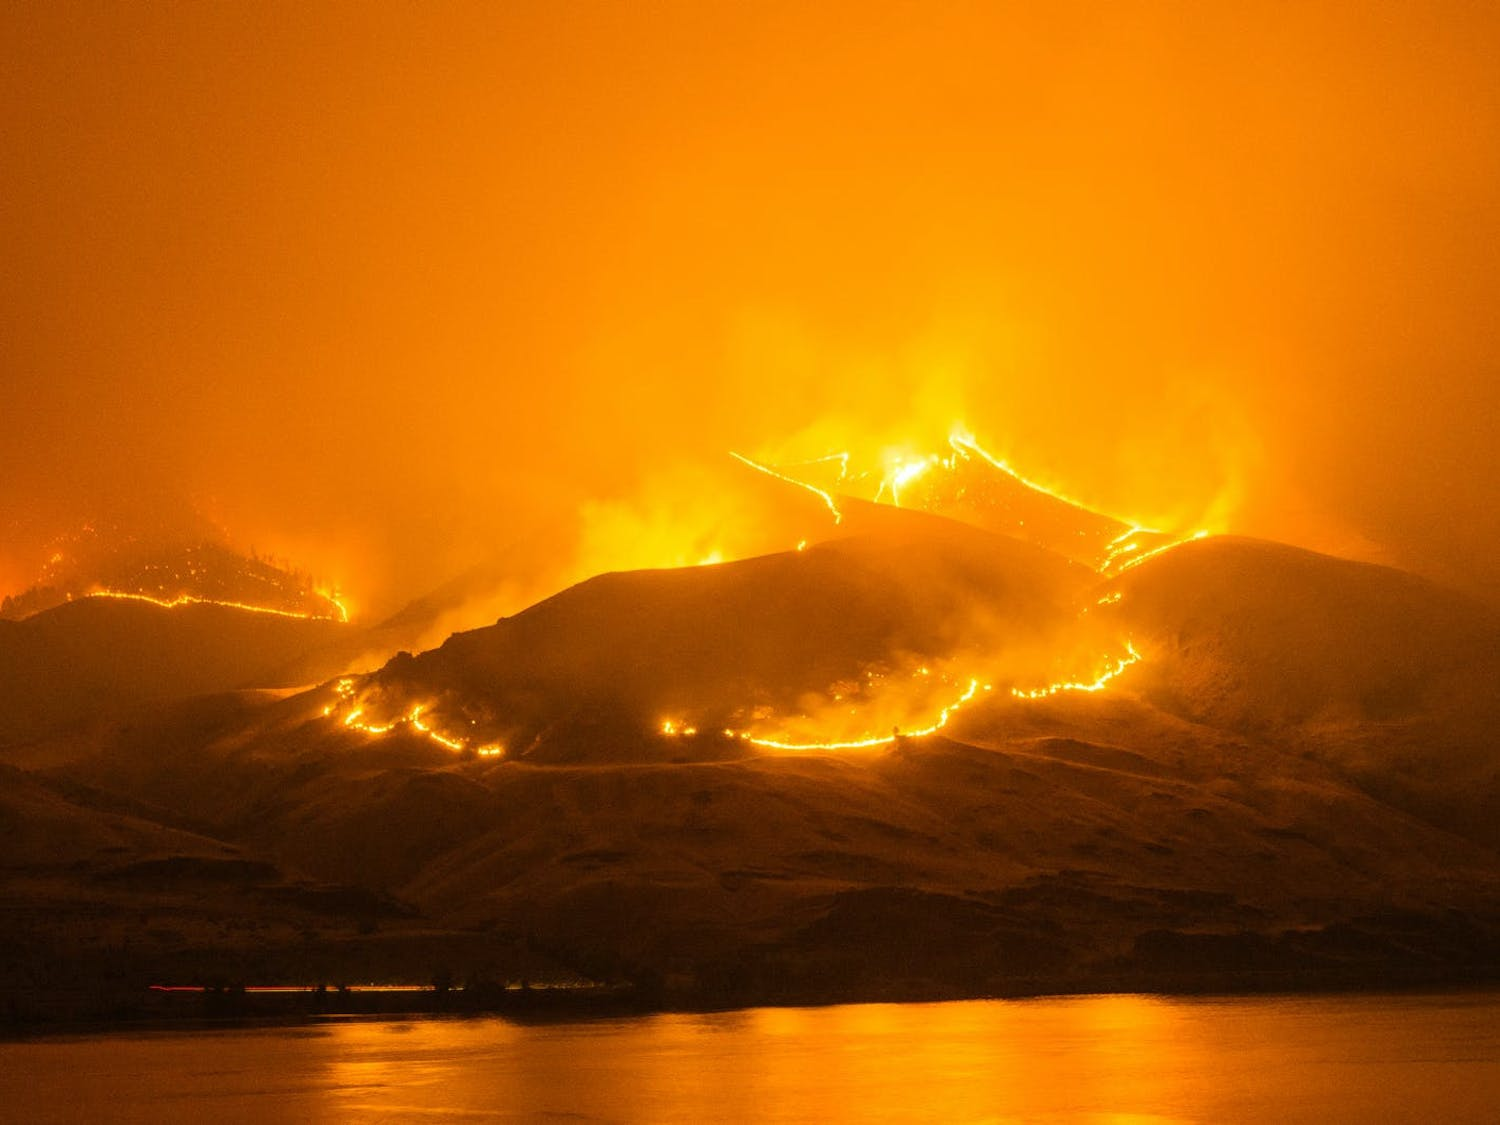 Wildfires running down the slopes of mountains near Orondo in 2014, just north of Wenatchee, Wash. Whatcom County officials remind residents that wildfires are just as possible on the wet side. // Photo courtesy of Frank Cone via Pexels